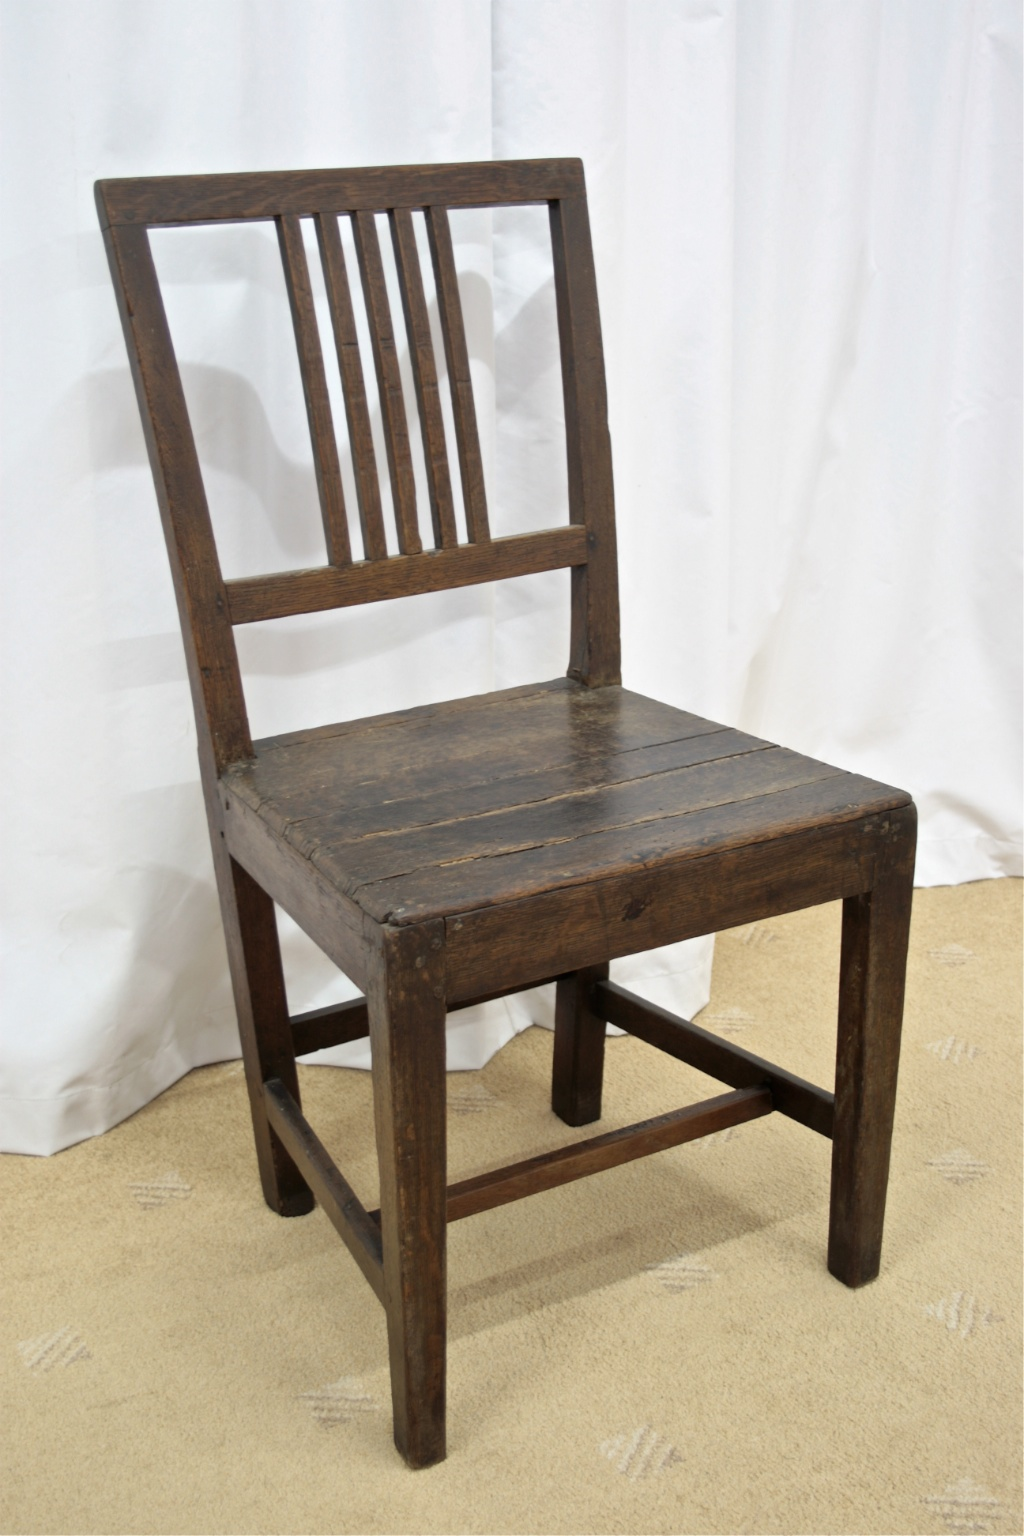 dining chairs for sale yellow and white accent jointed oak chair antiques classifieds